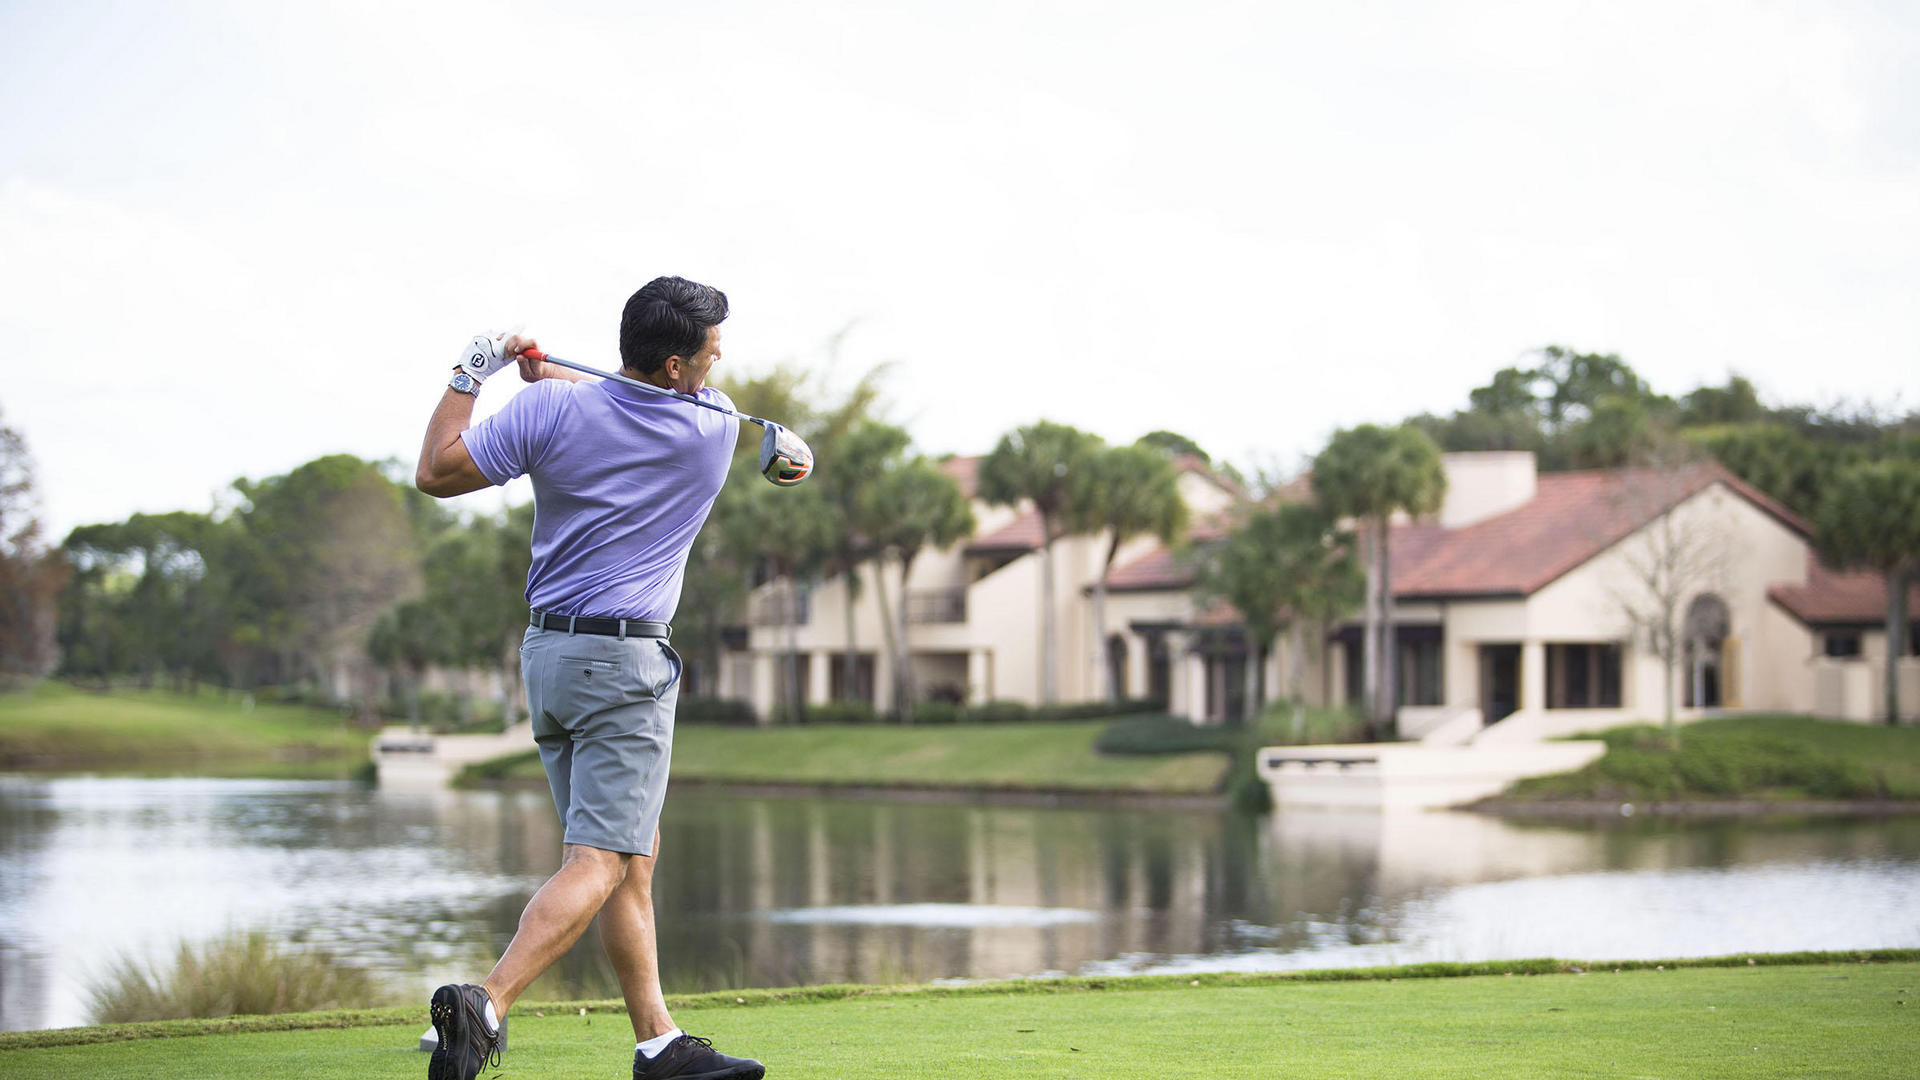 Teeing Off at The Villas of Grand Cypress in Orlando Florida